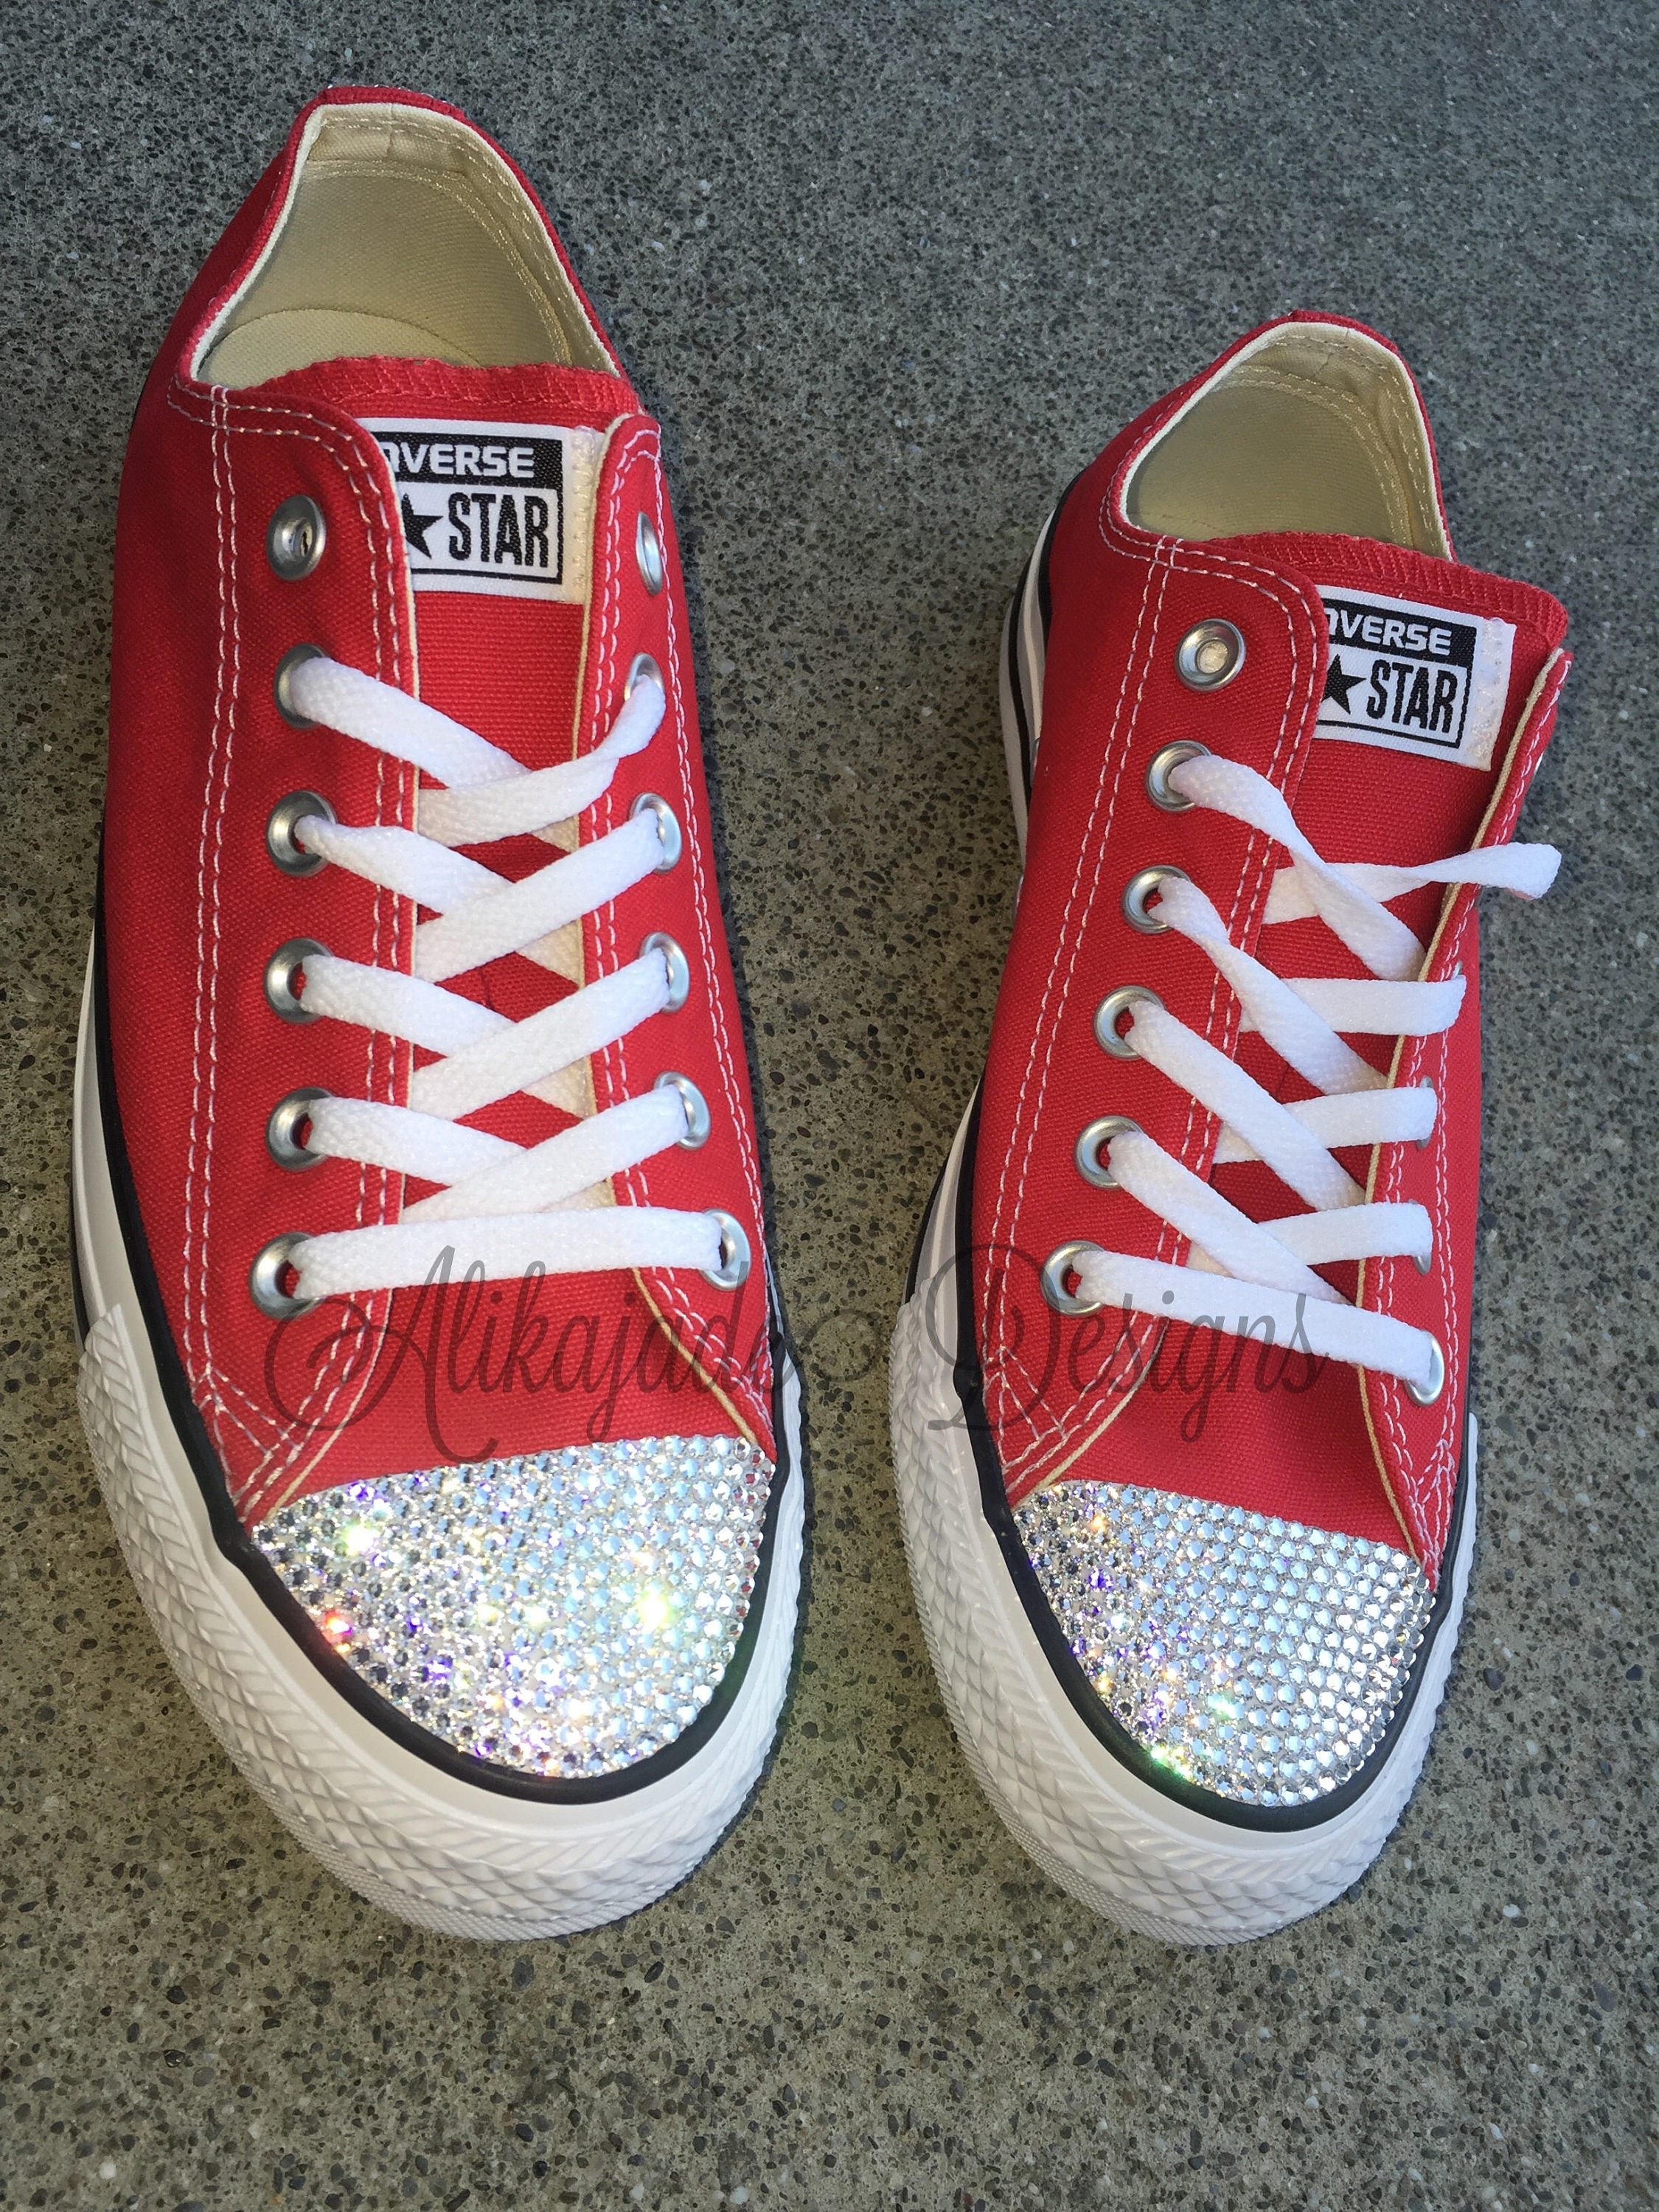 Swarovski Crystal Red Converse - Crystal Converse - Gift for Her ... 0de483562